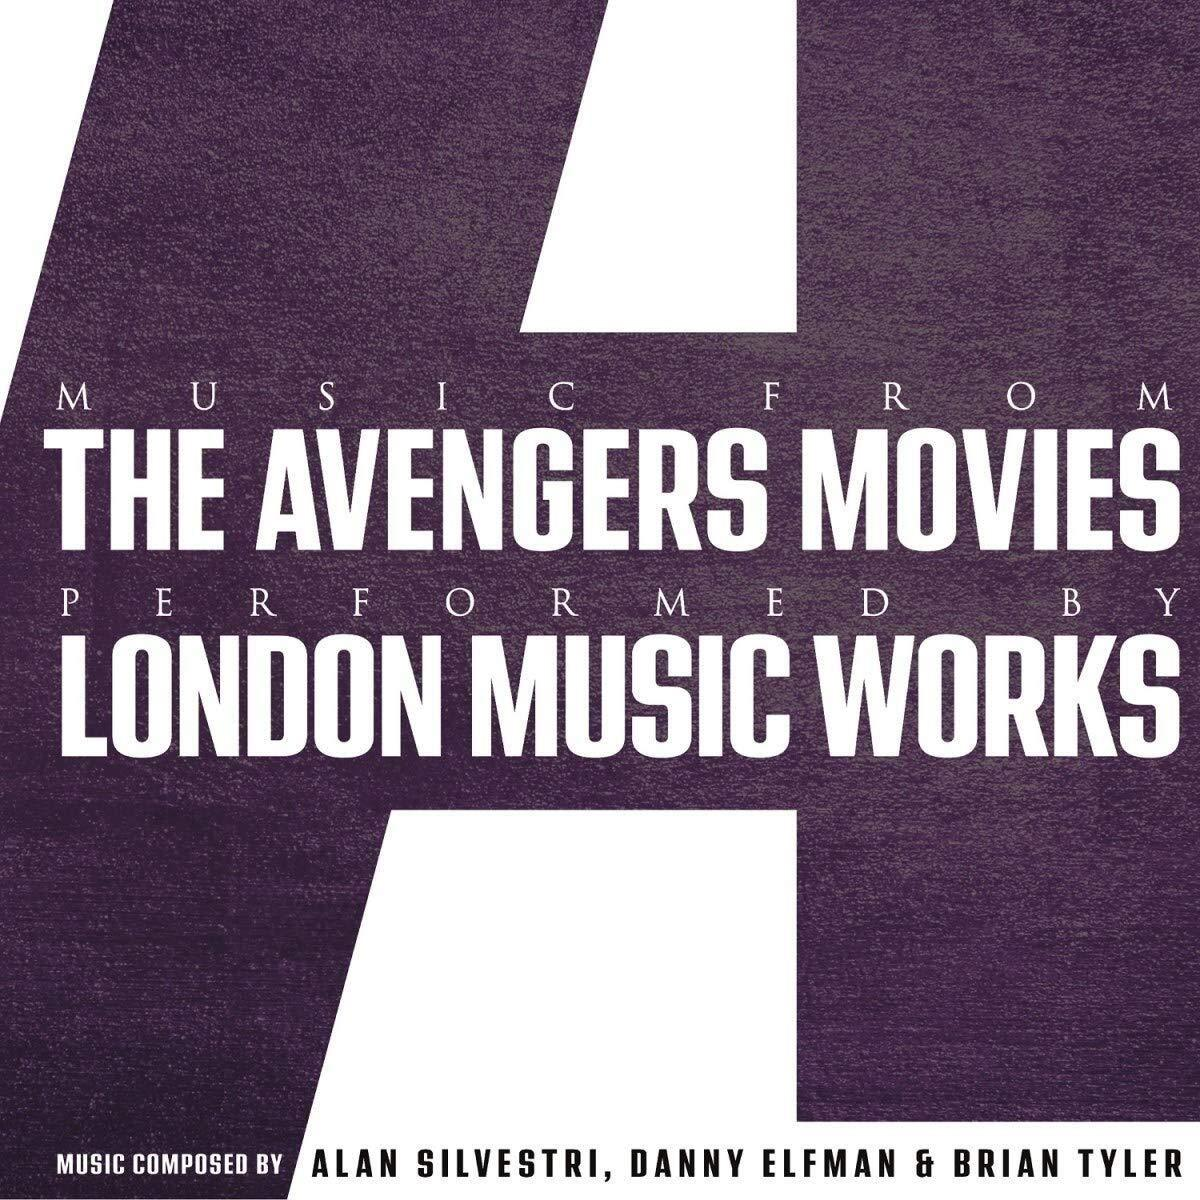 London Music Works - Avengers Movies, Music From The [LP] - Urban Vinyl | Records, Headphones, and more.